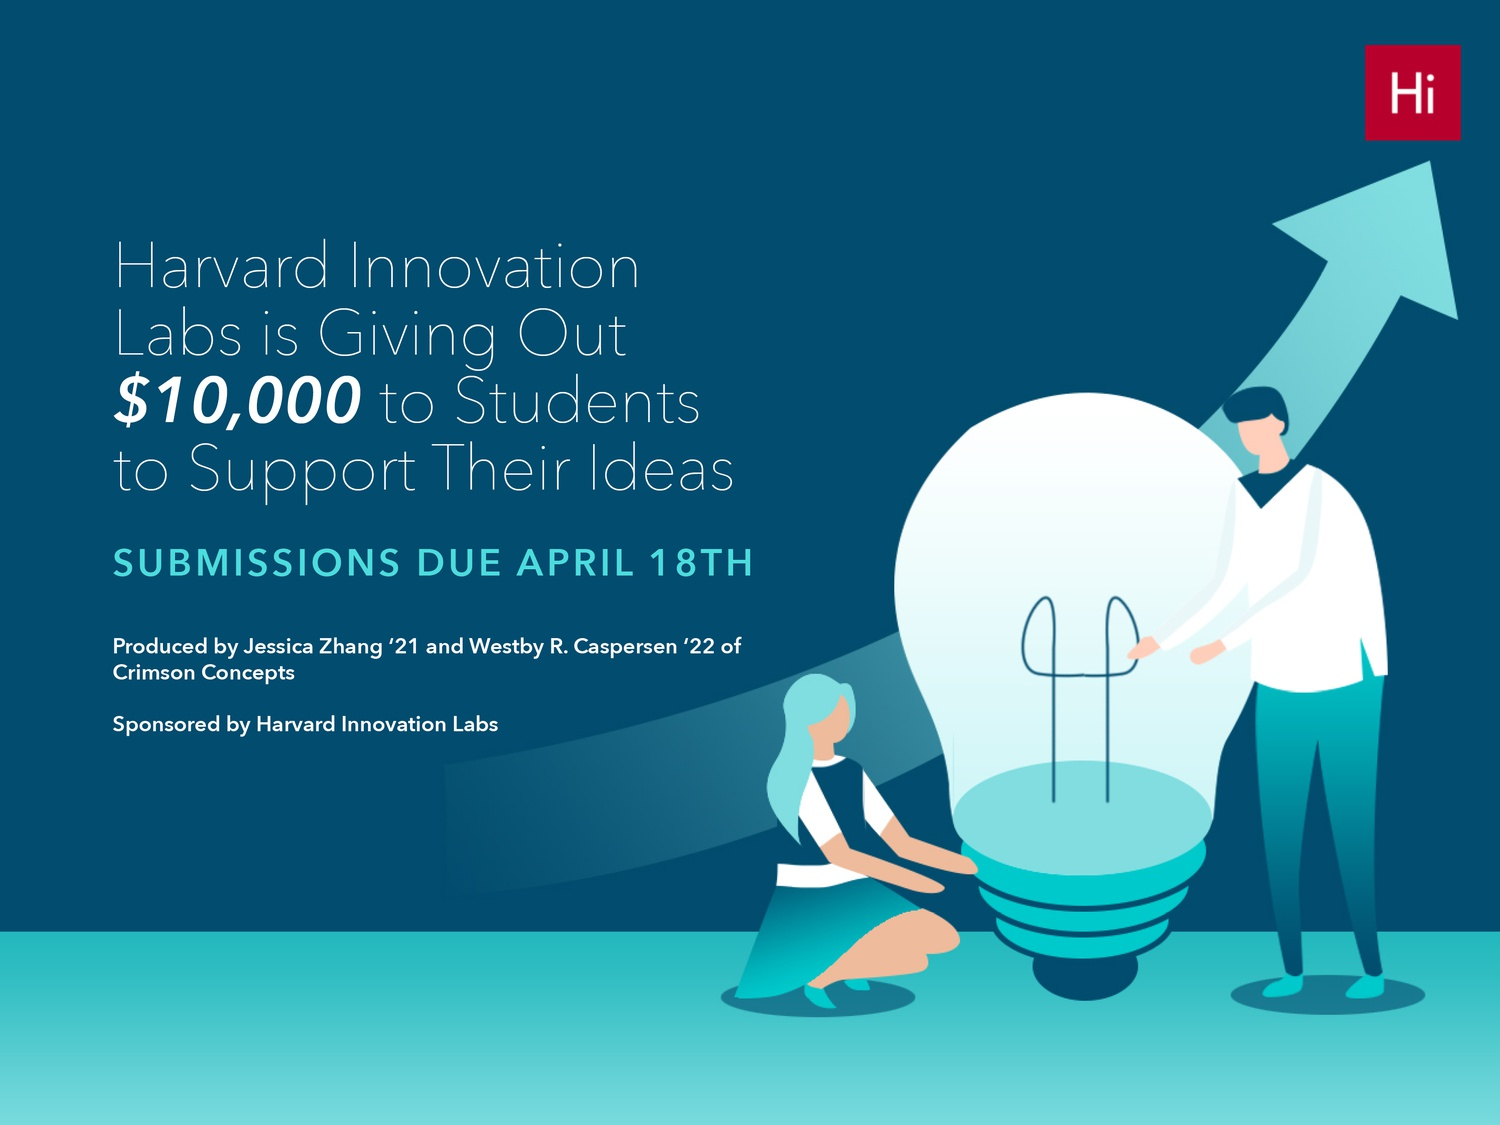 Harvard Innovation Labs is Giving Out $10,000 to Students to